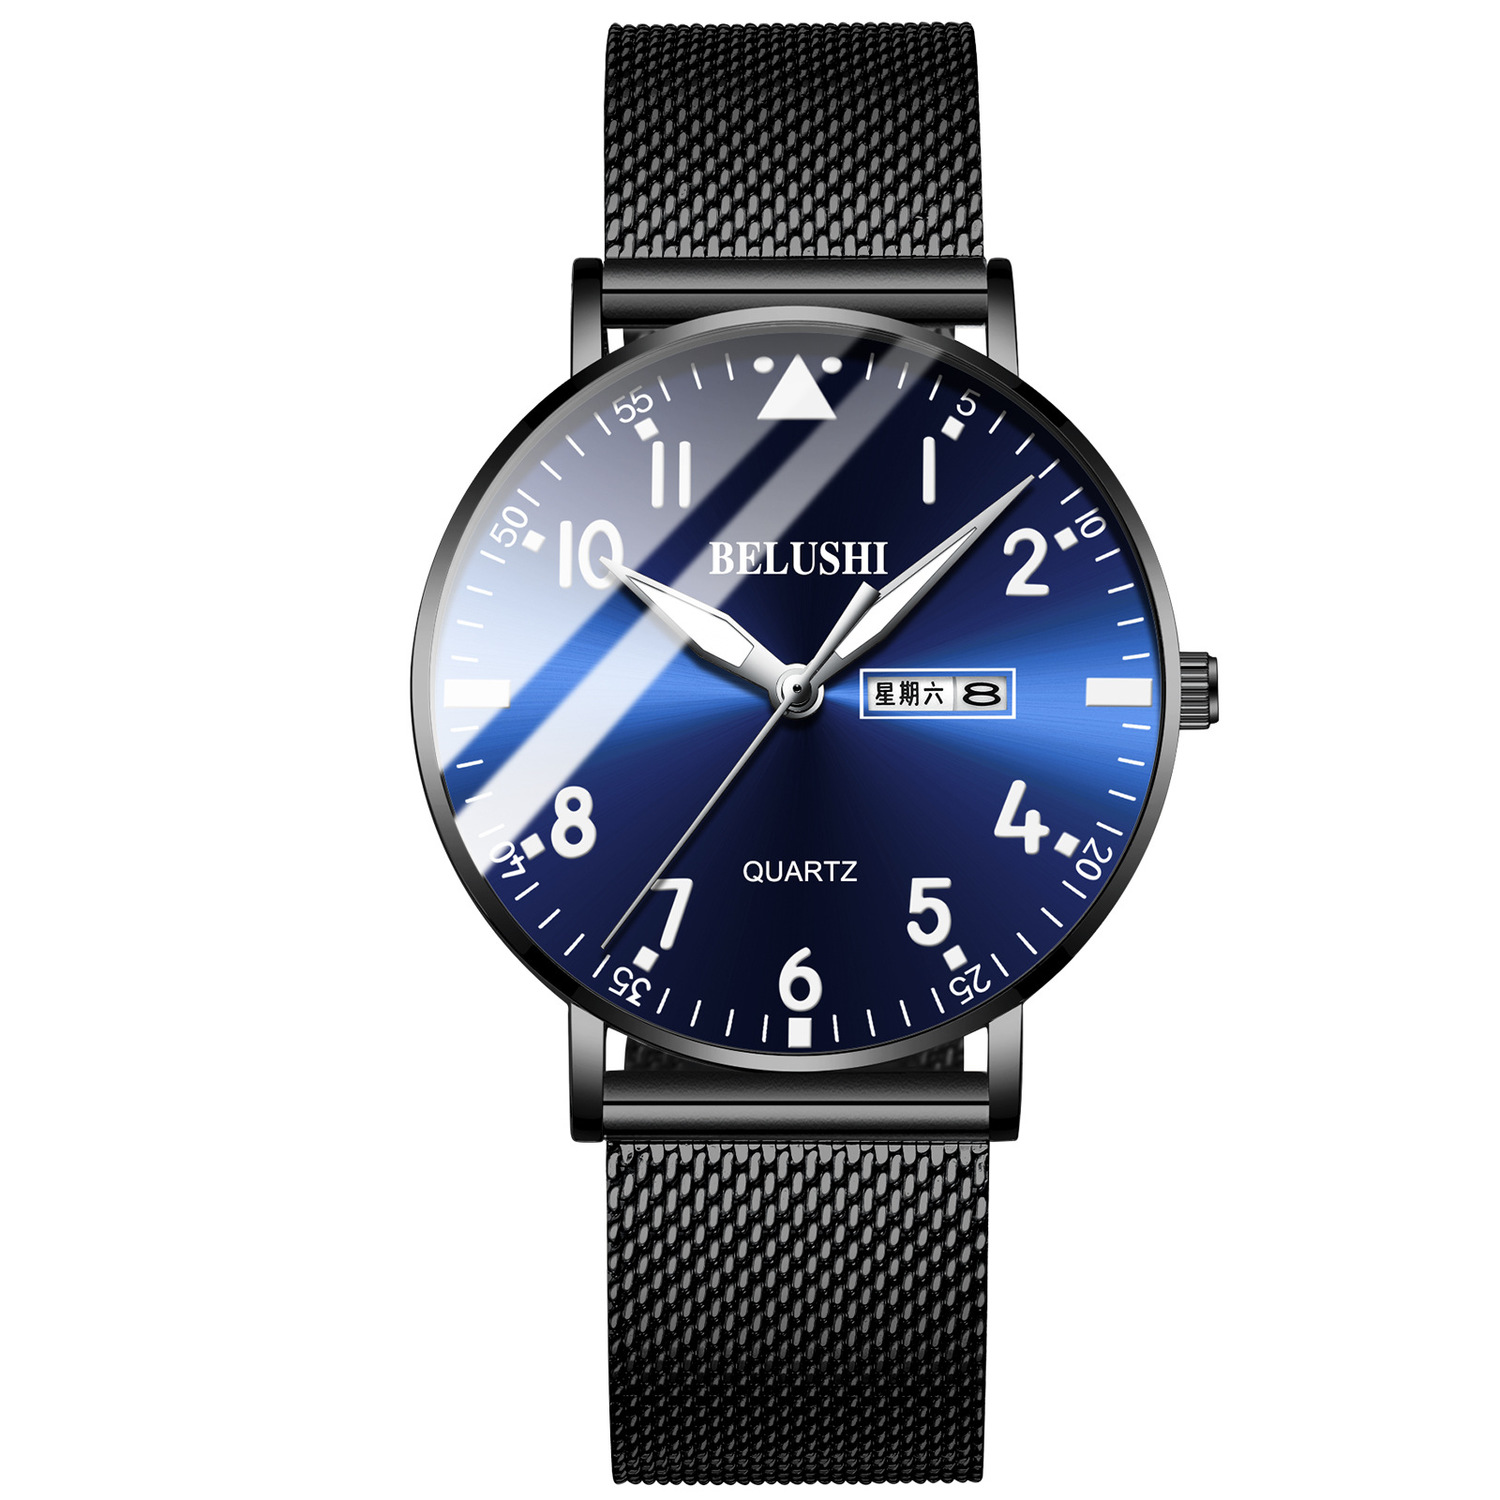 Watch Male Business Affairs Leisure Time Quartz Watch Waterproof Male Surface